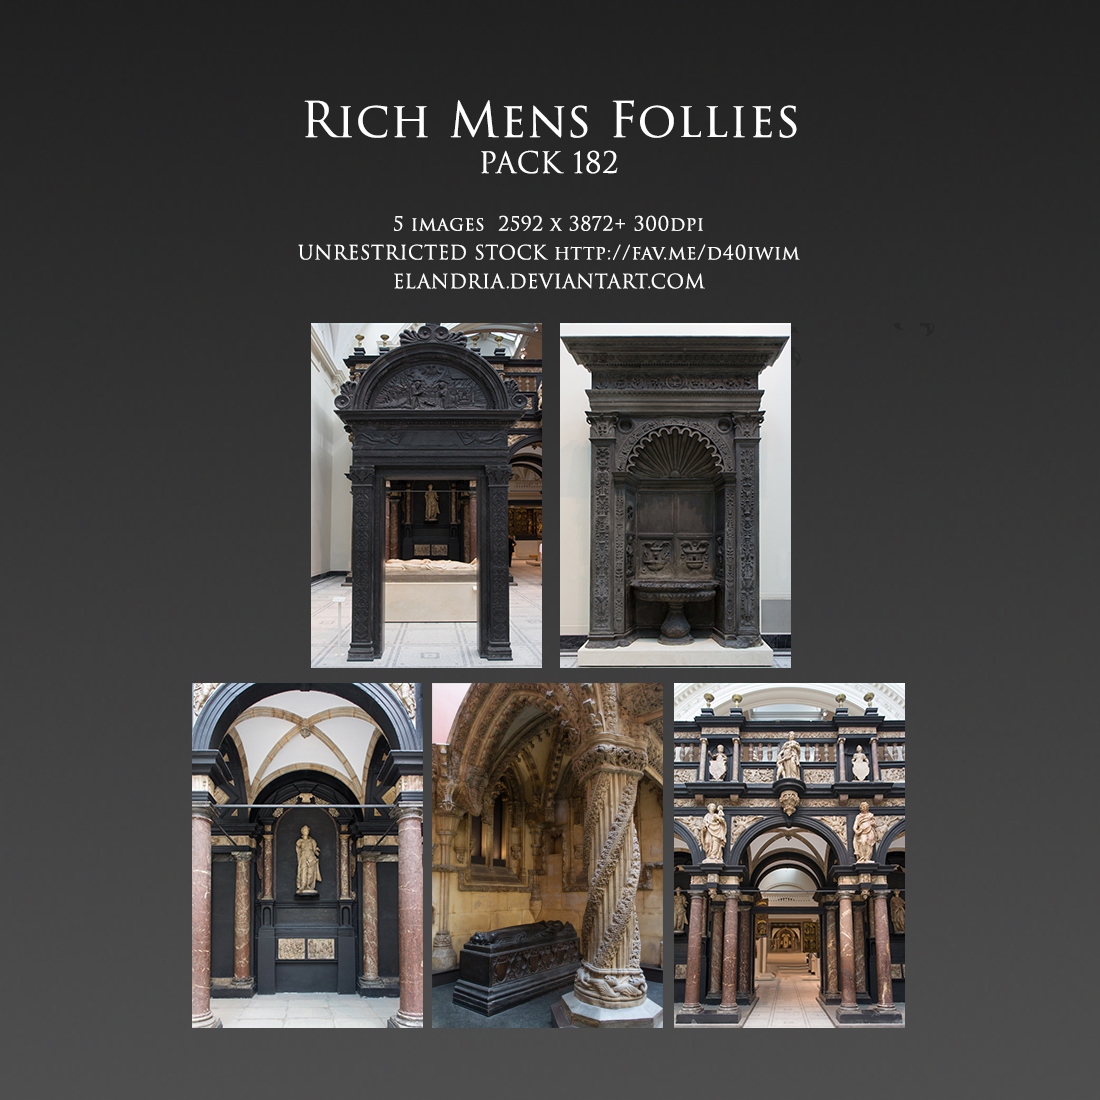 Pack182 Rich Mens Follies UNRESTRICTED